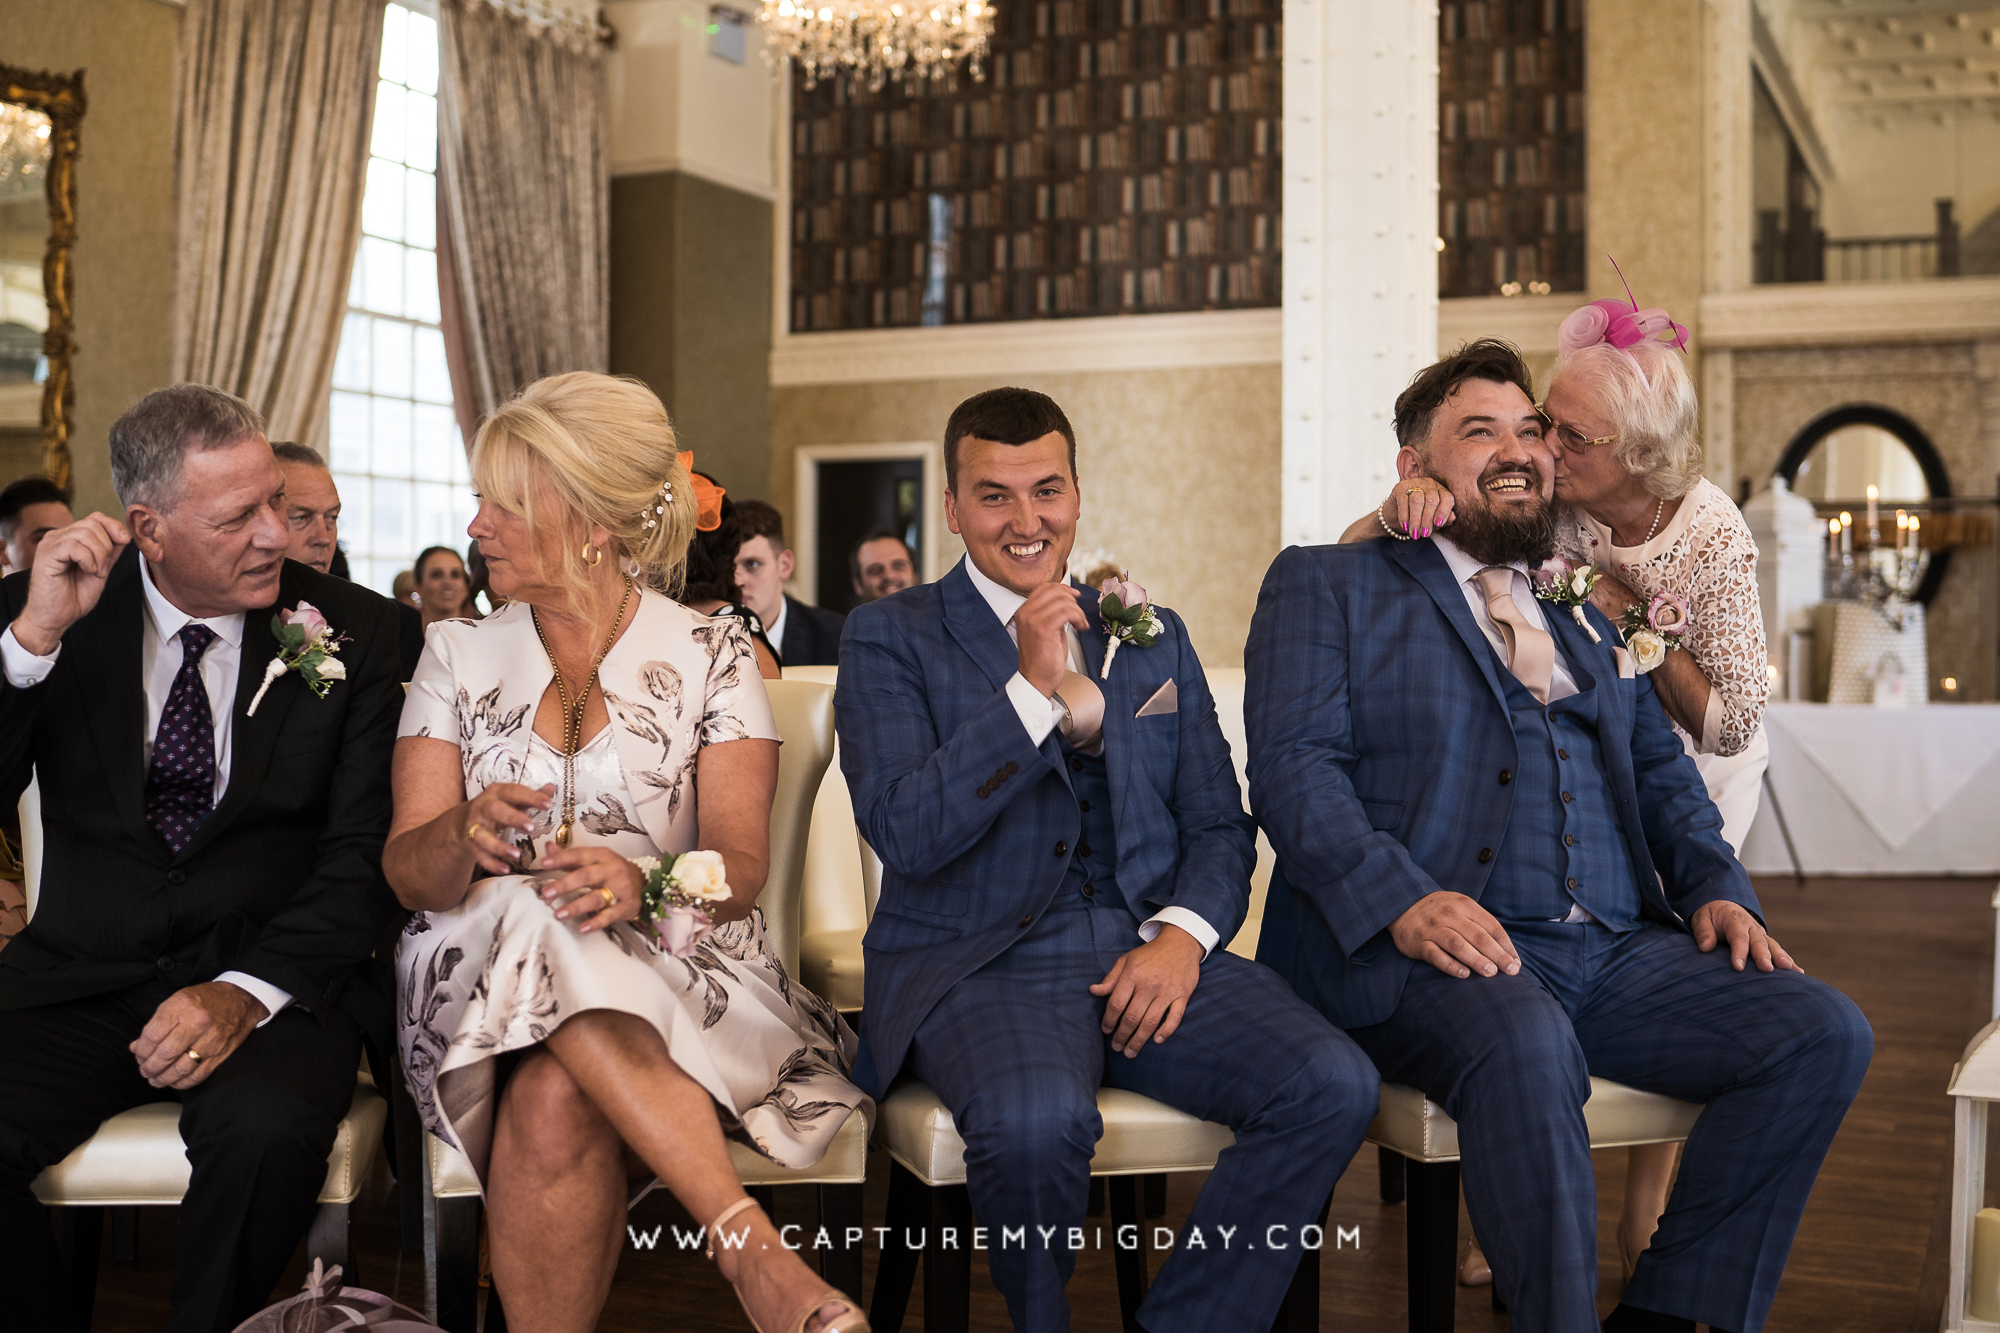 guests waiting for bride in ceremony room at 30 James street